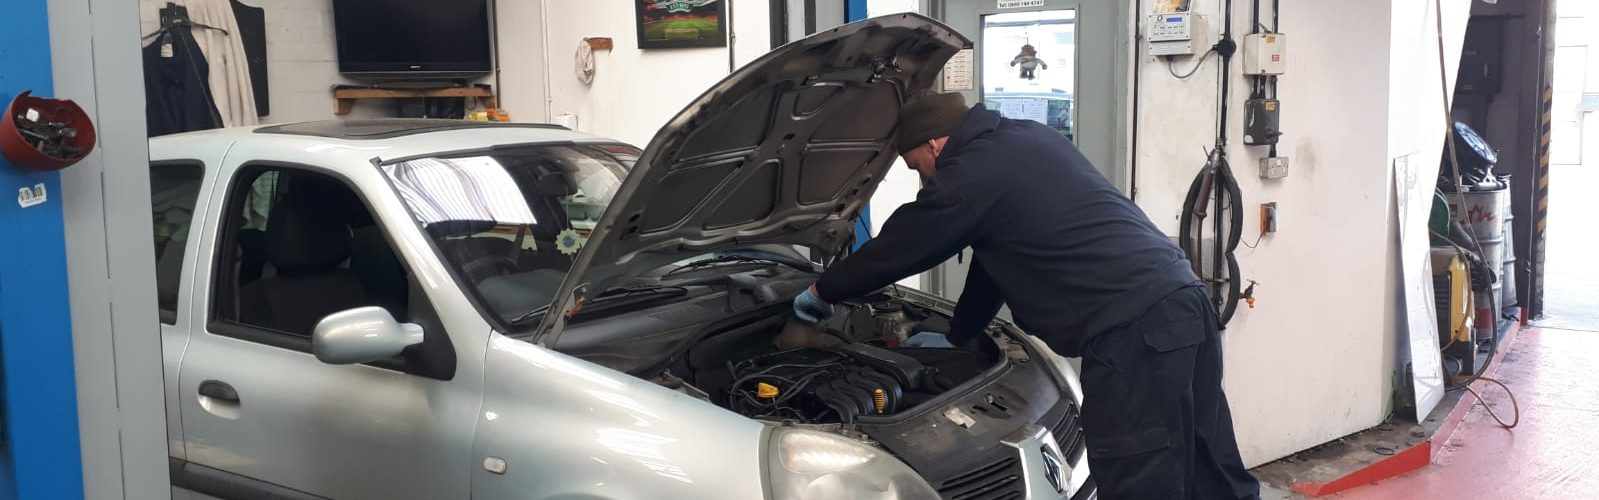 VFR Motors Currently Still Open For Car Repairs In Lockdown